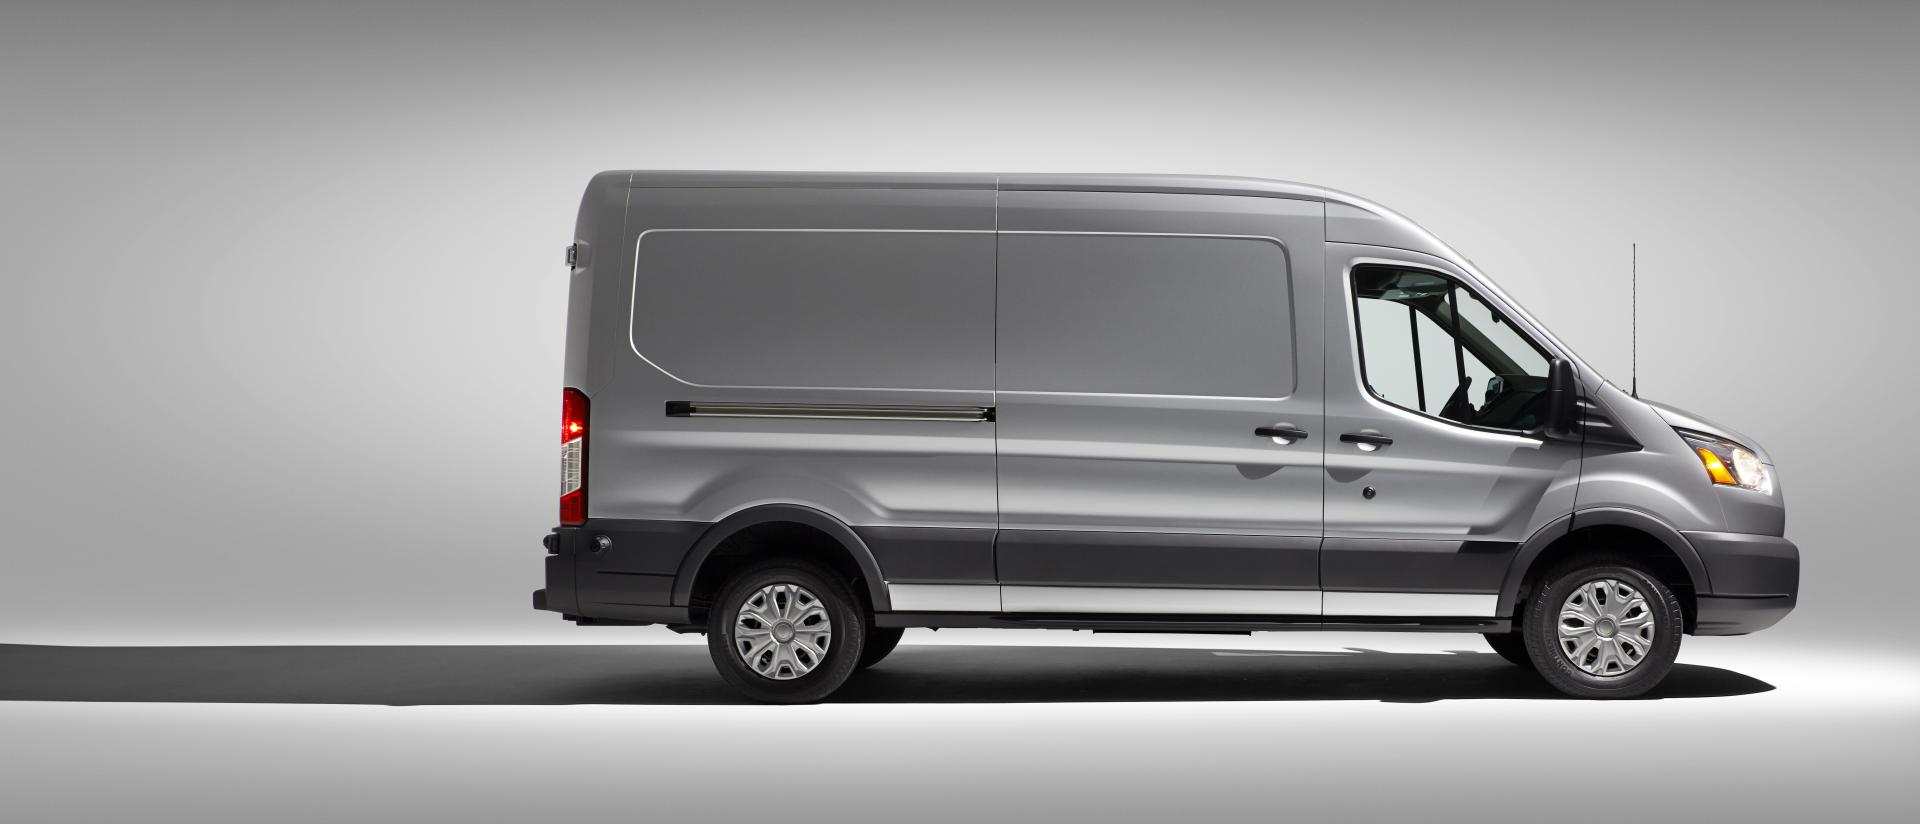 2015 ford transit. Black Bedroom Furniture Sets. Home Design Ideas